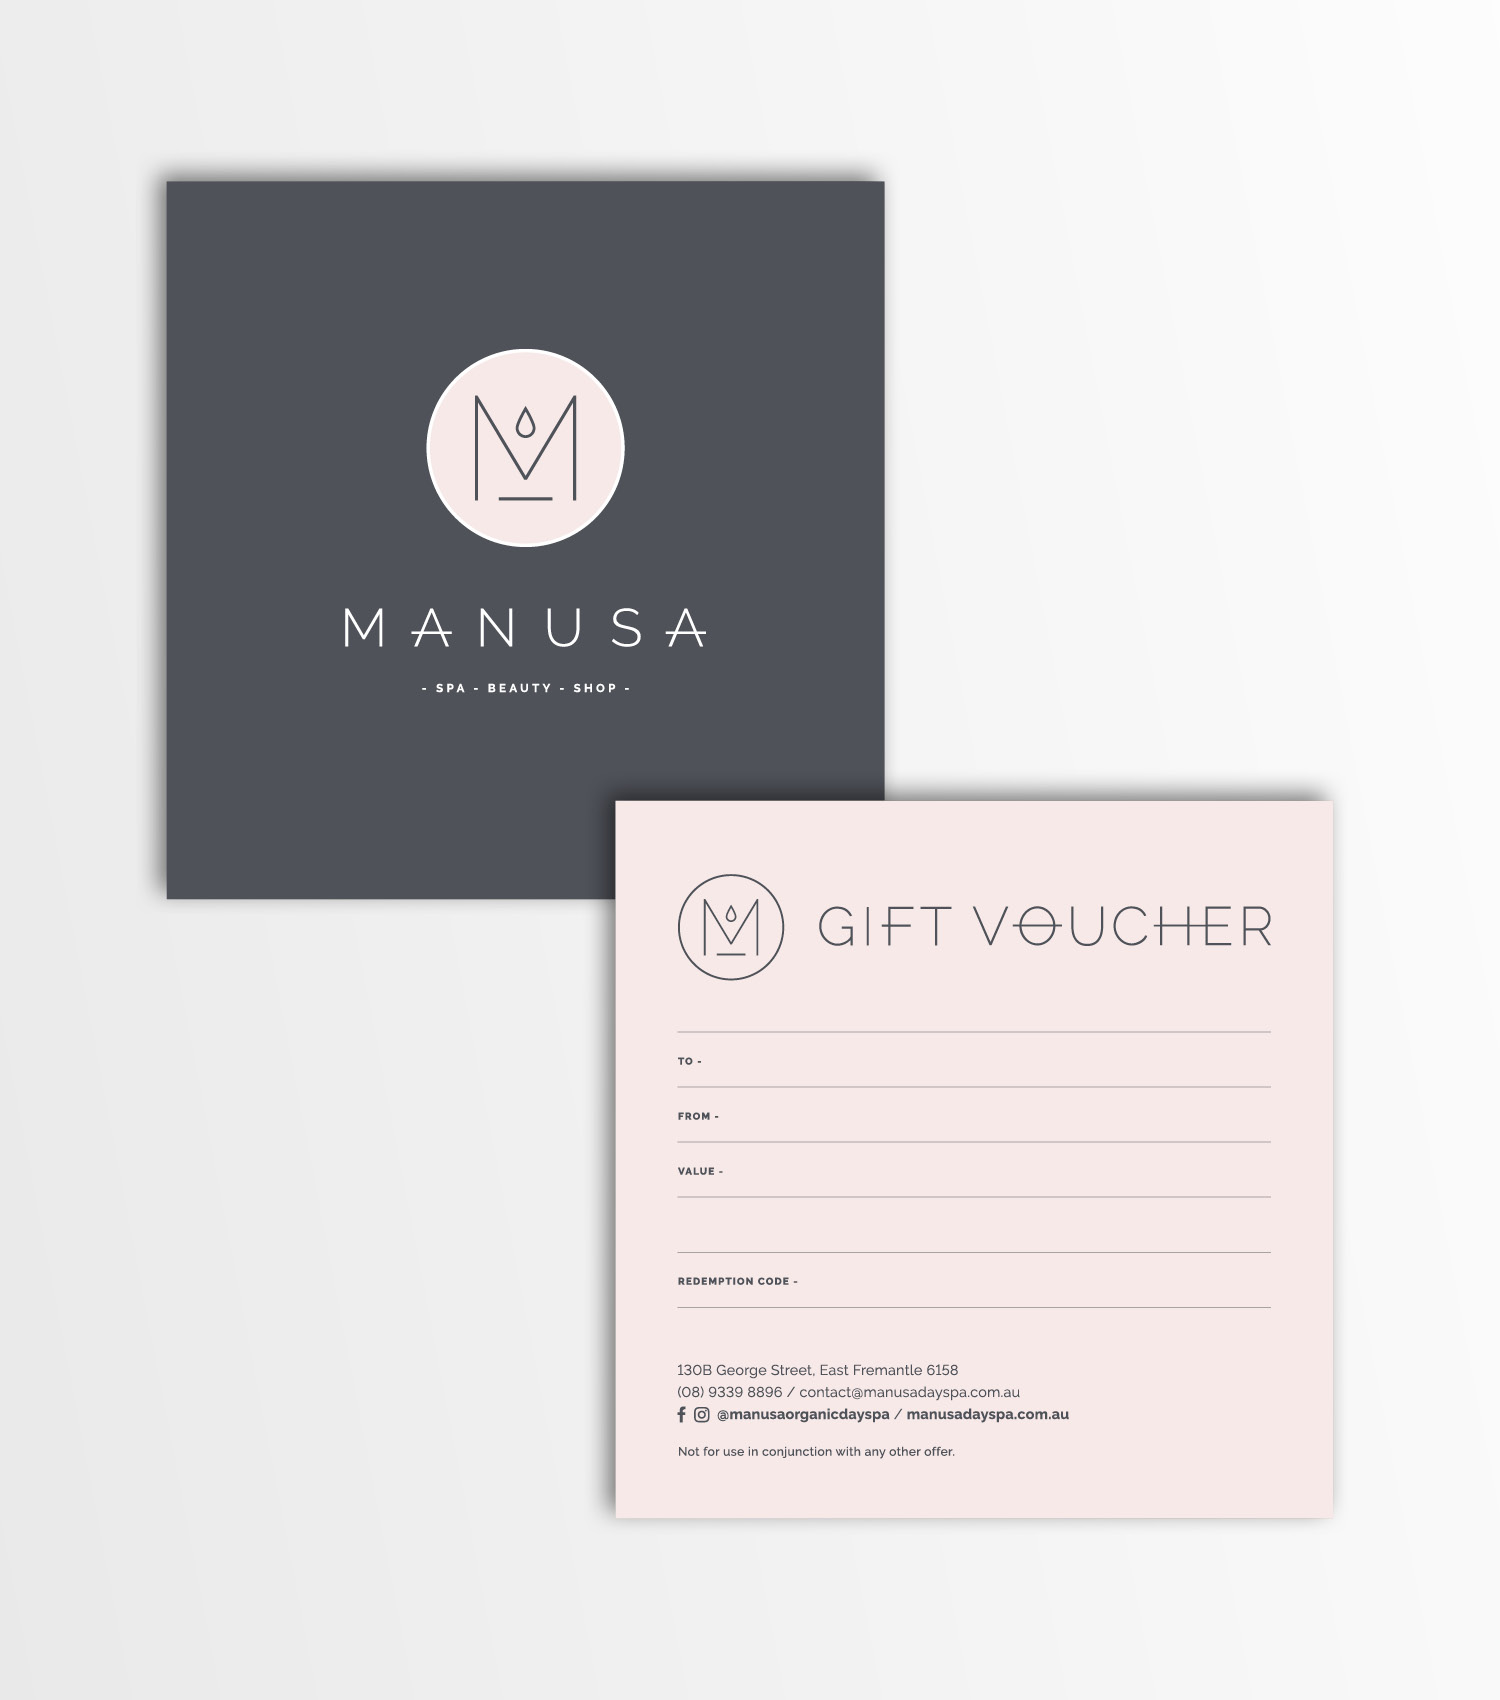 Manusa_Organic_Beauty_Spa_Couples_Treatments_Packages_GIFT_VOUCHER.jpg